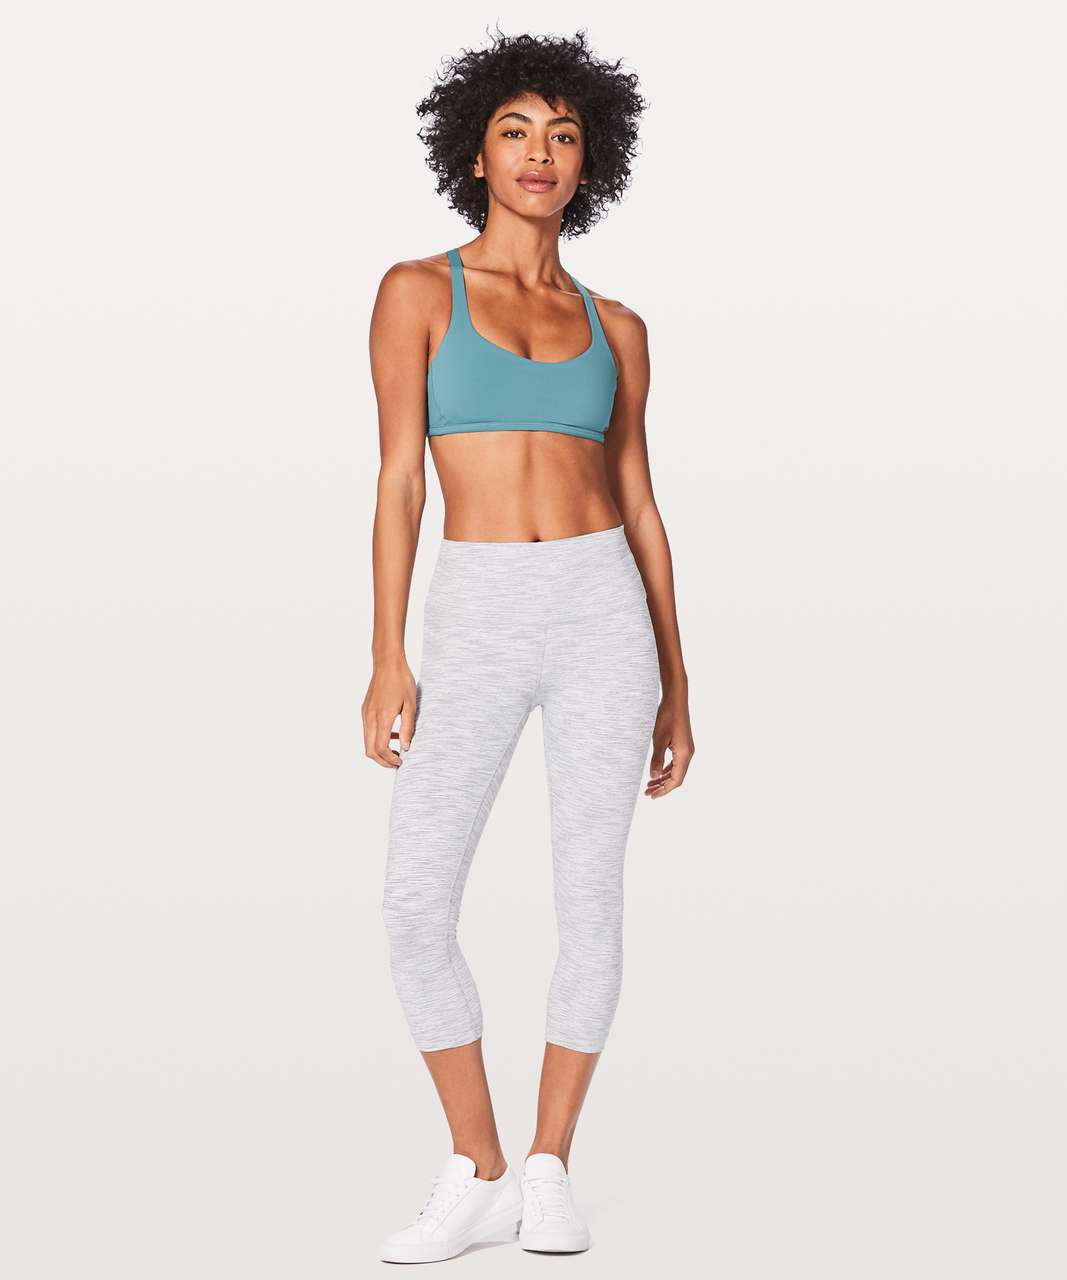 Lululemon Free To Be Zen Bra - Persian Blue